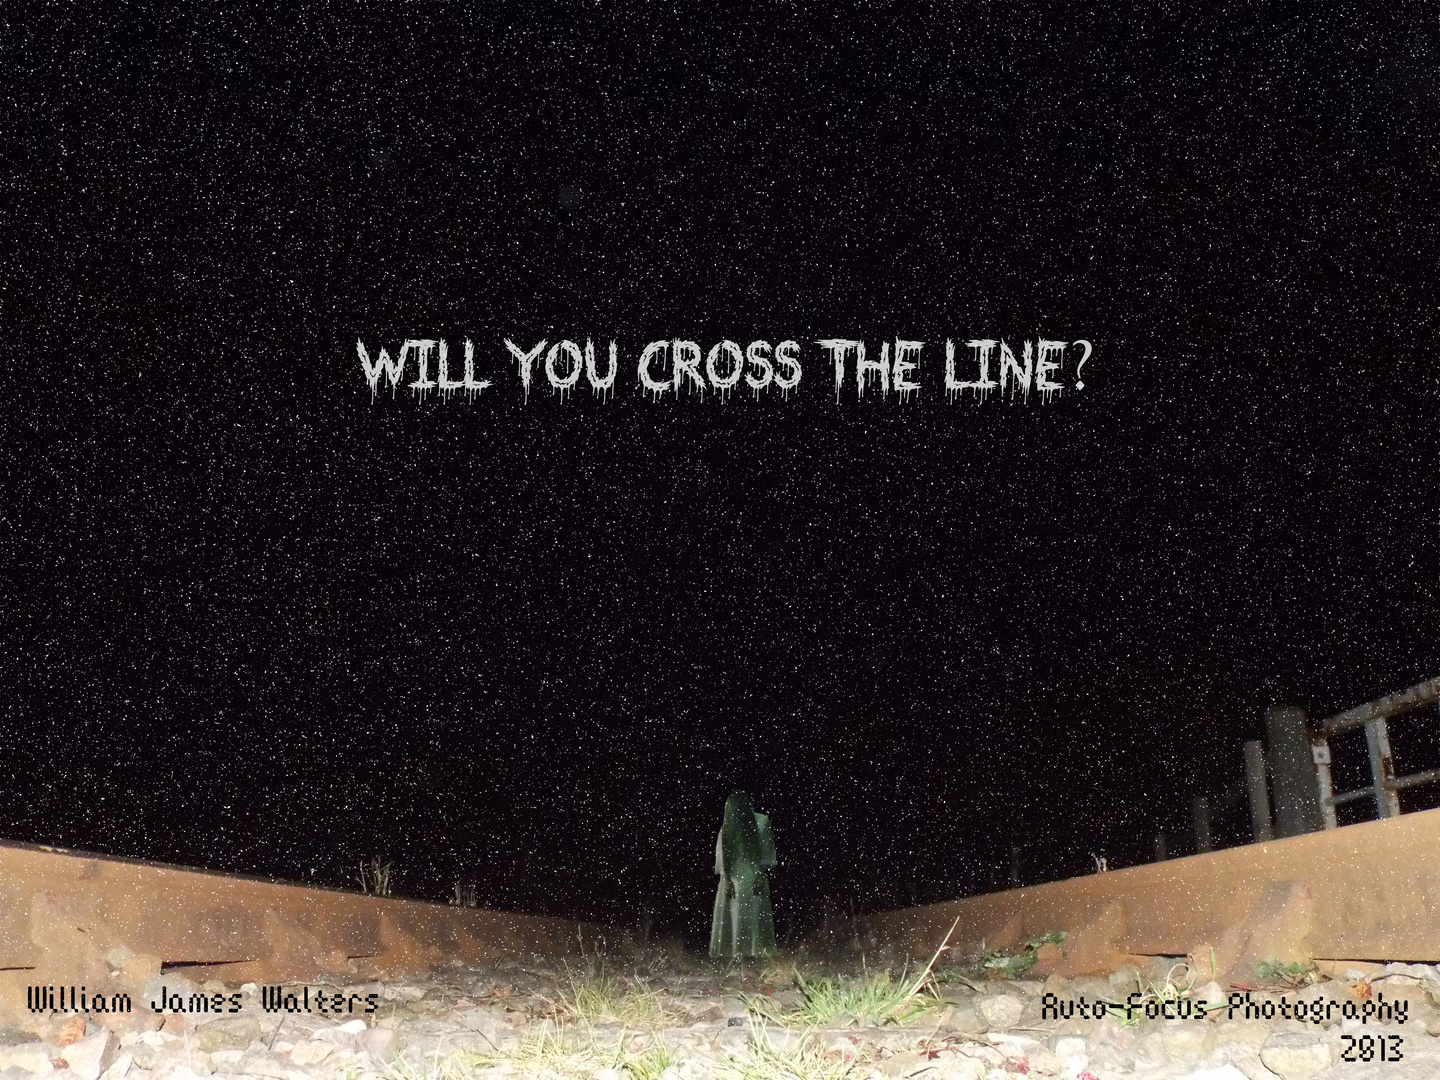 WILL YOU CROSS THE LINE?